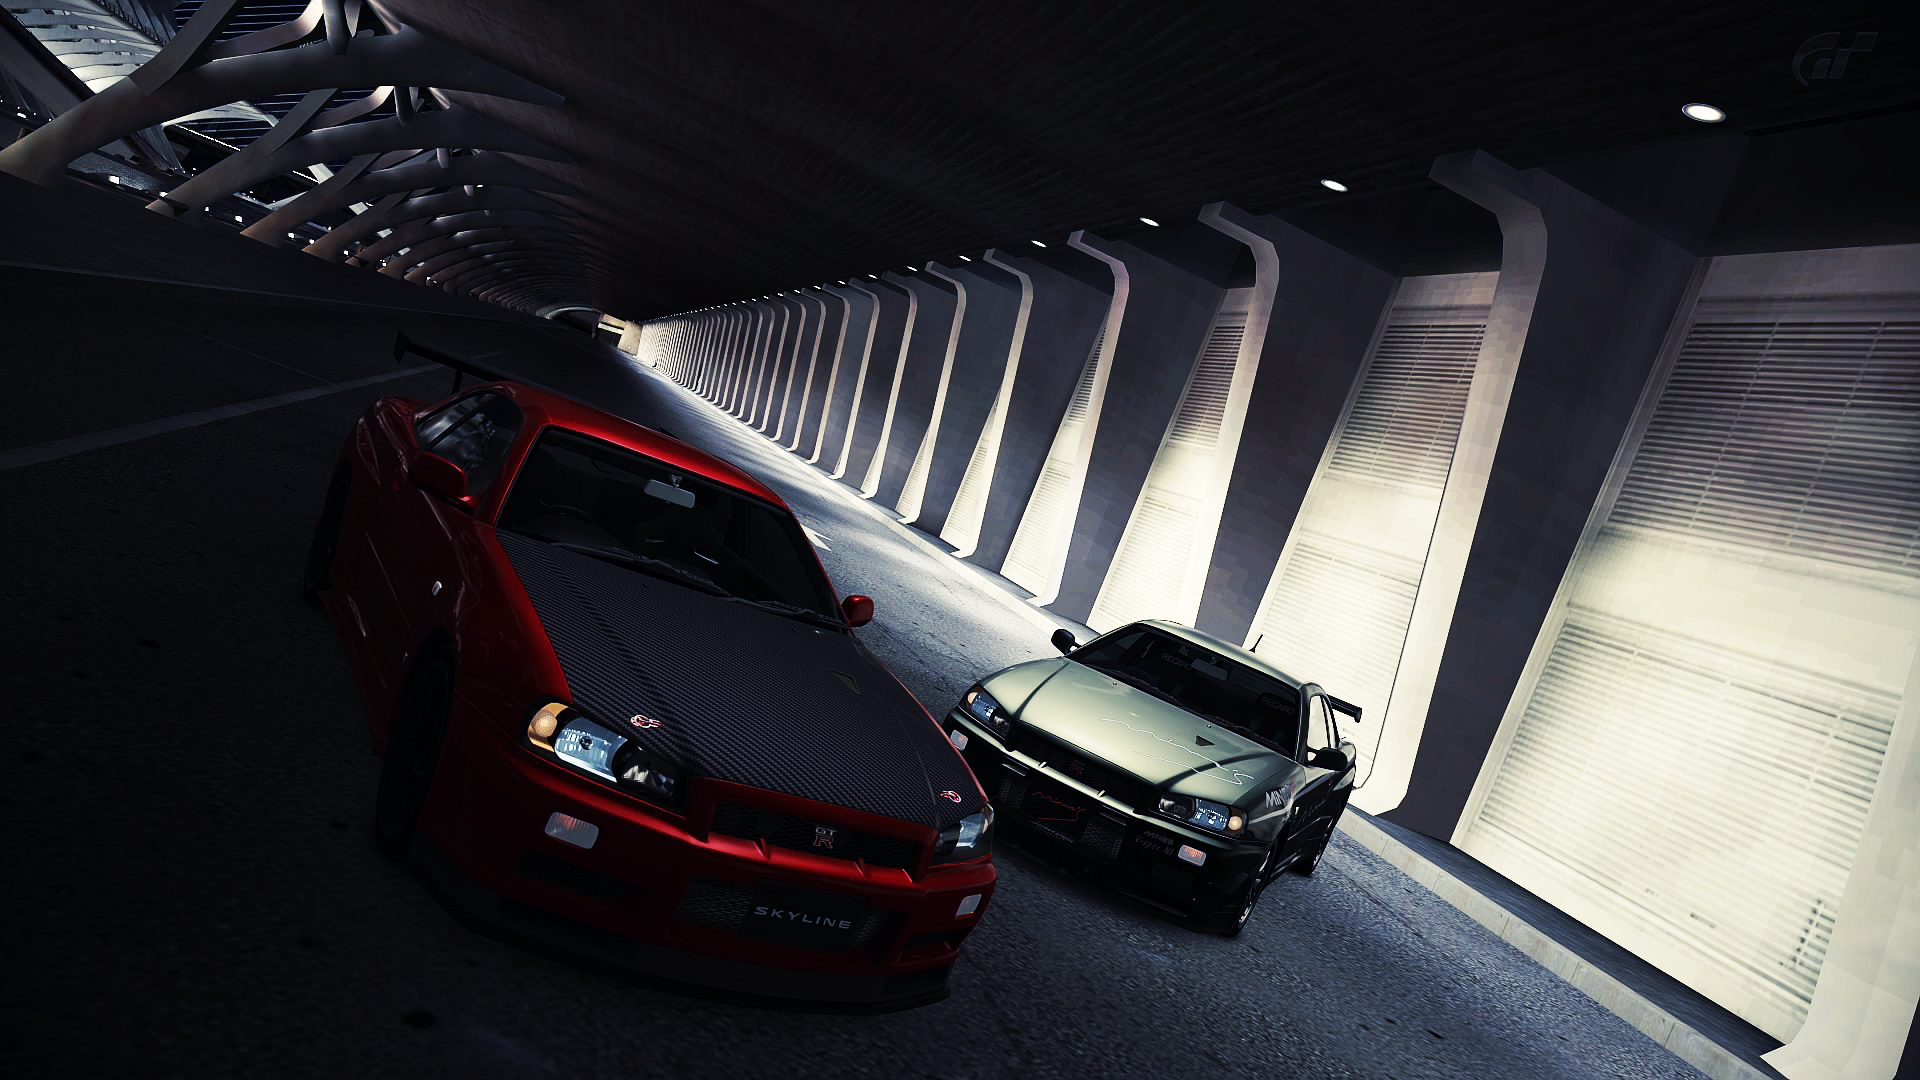 Skyline R34 - City of arts.jpg